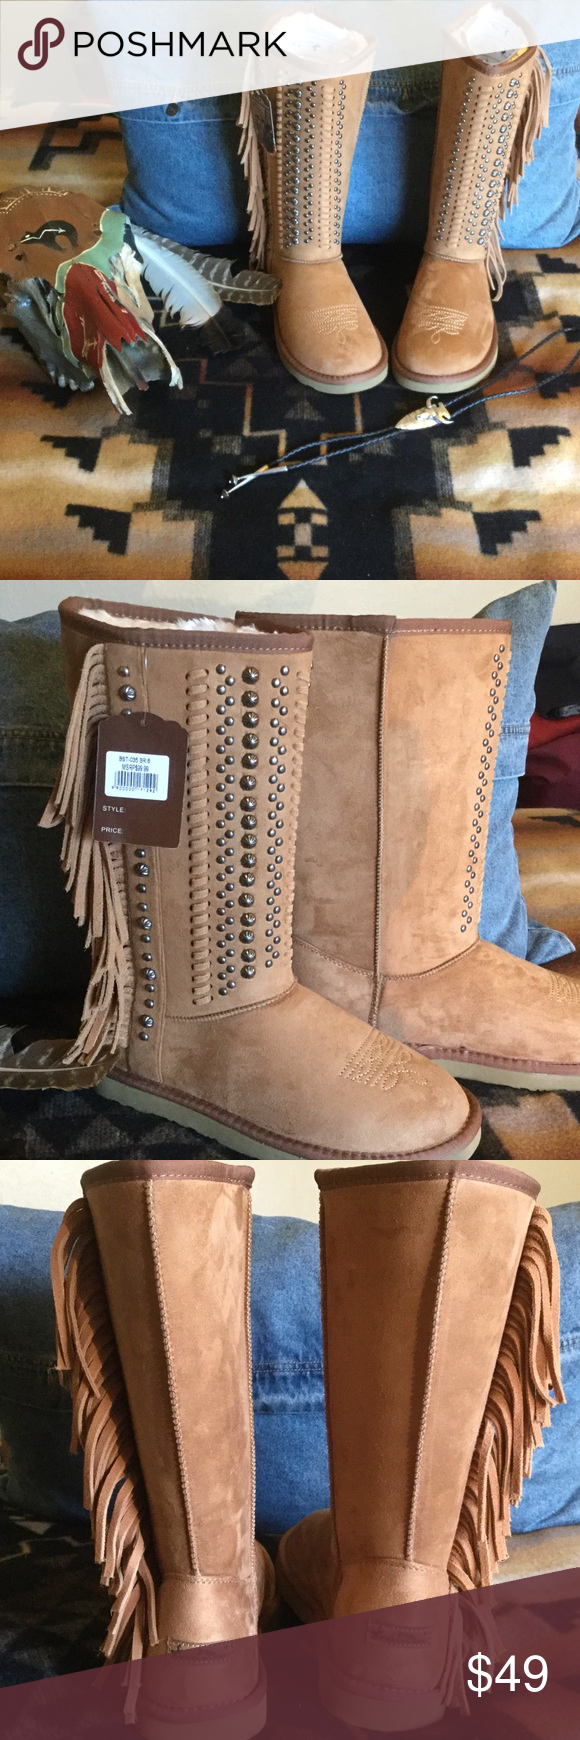 Montana West Boots Size 8 These gorgeous winter boots are tan with brass studs and fringe down the sides. I never wore them, because they were too big. They measure 12 1/2 inches from the sole, with a circumference of 17 inches at the top. Montana West Shoes Winter & Rain Boots